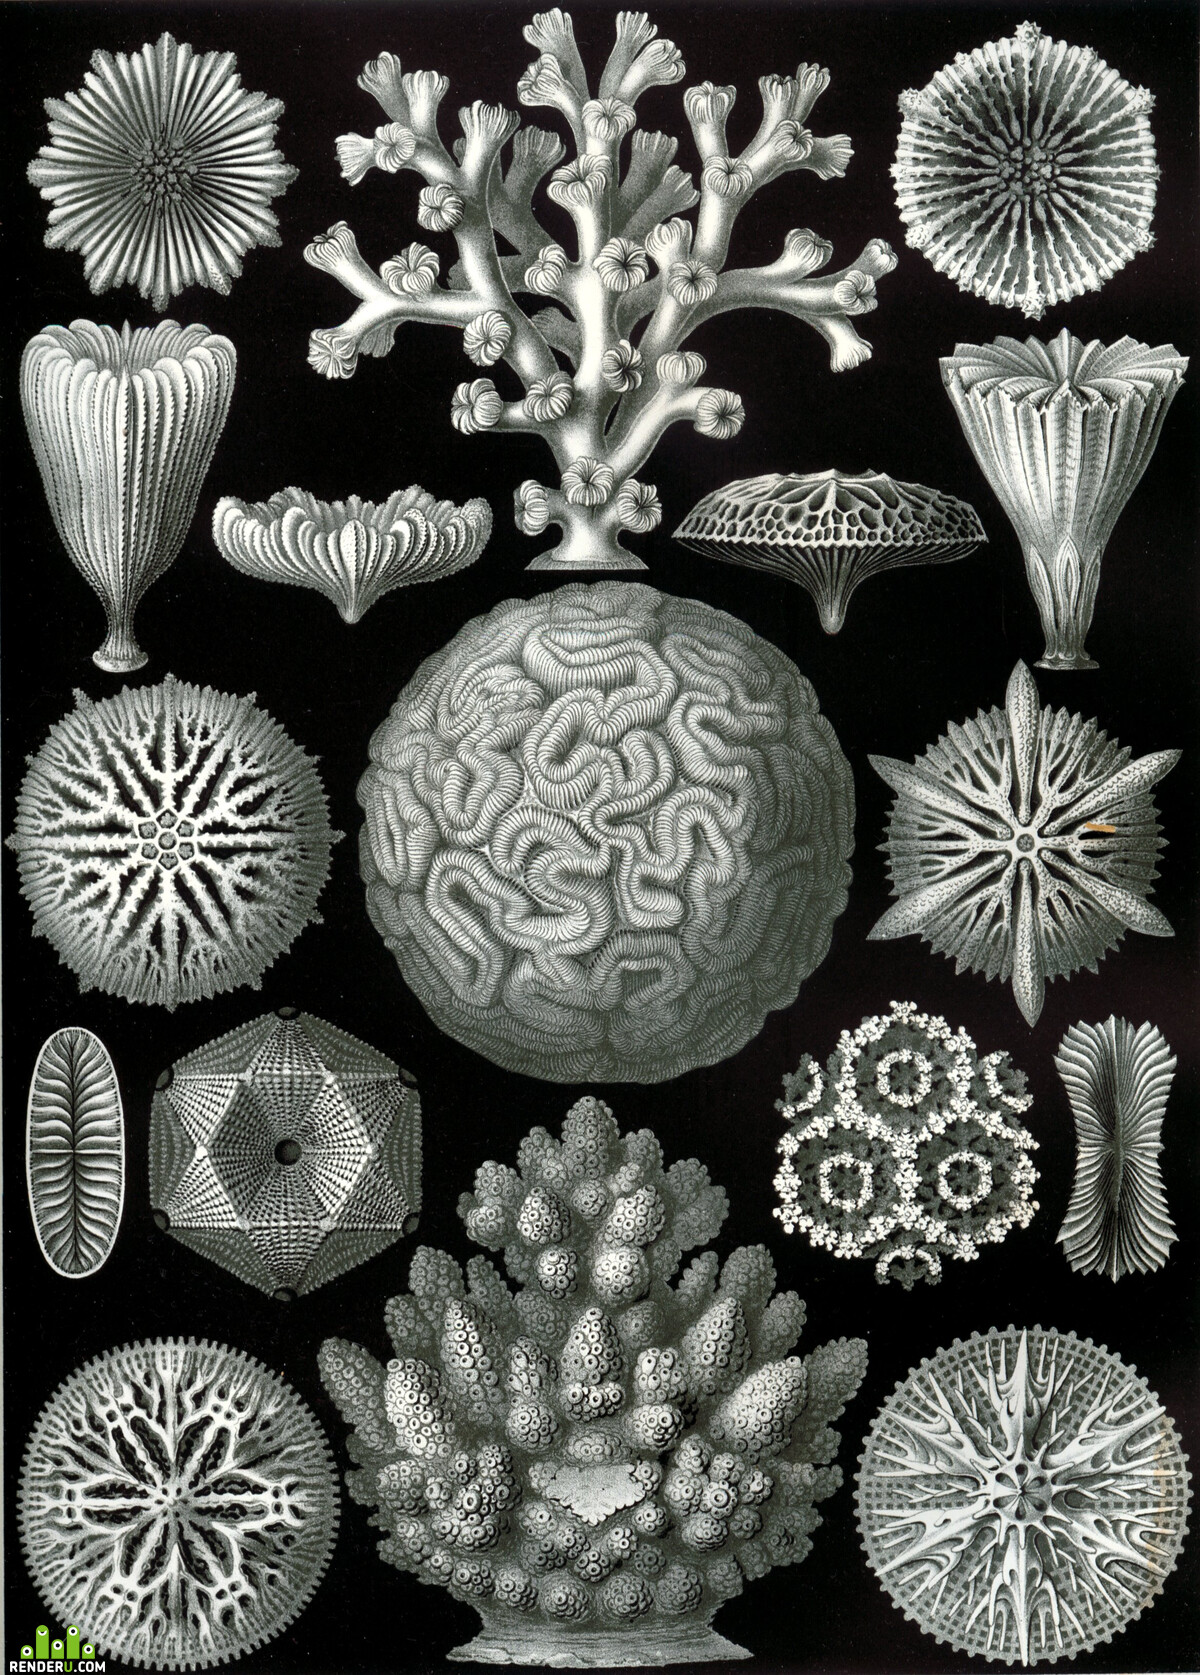 Haeckel_Hexacoralla.jpg